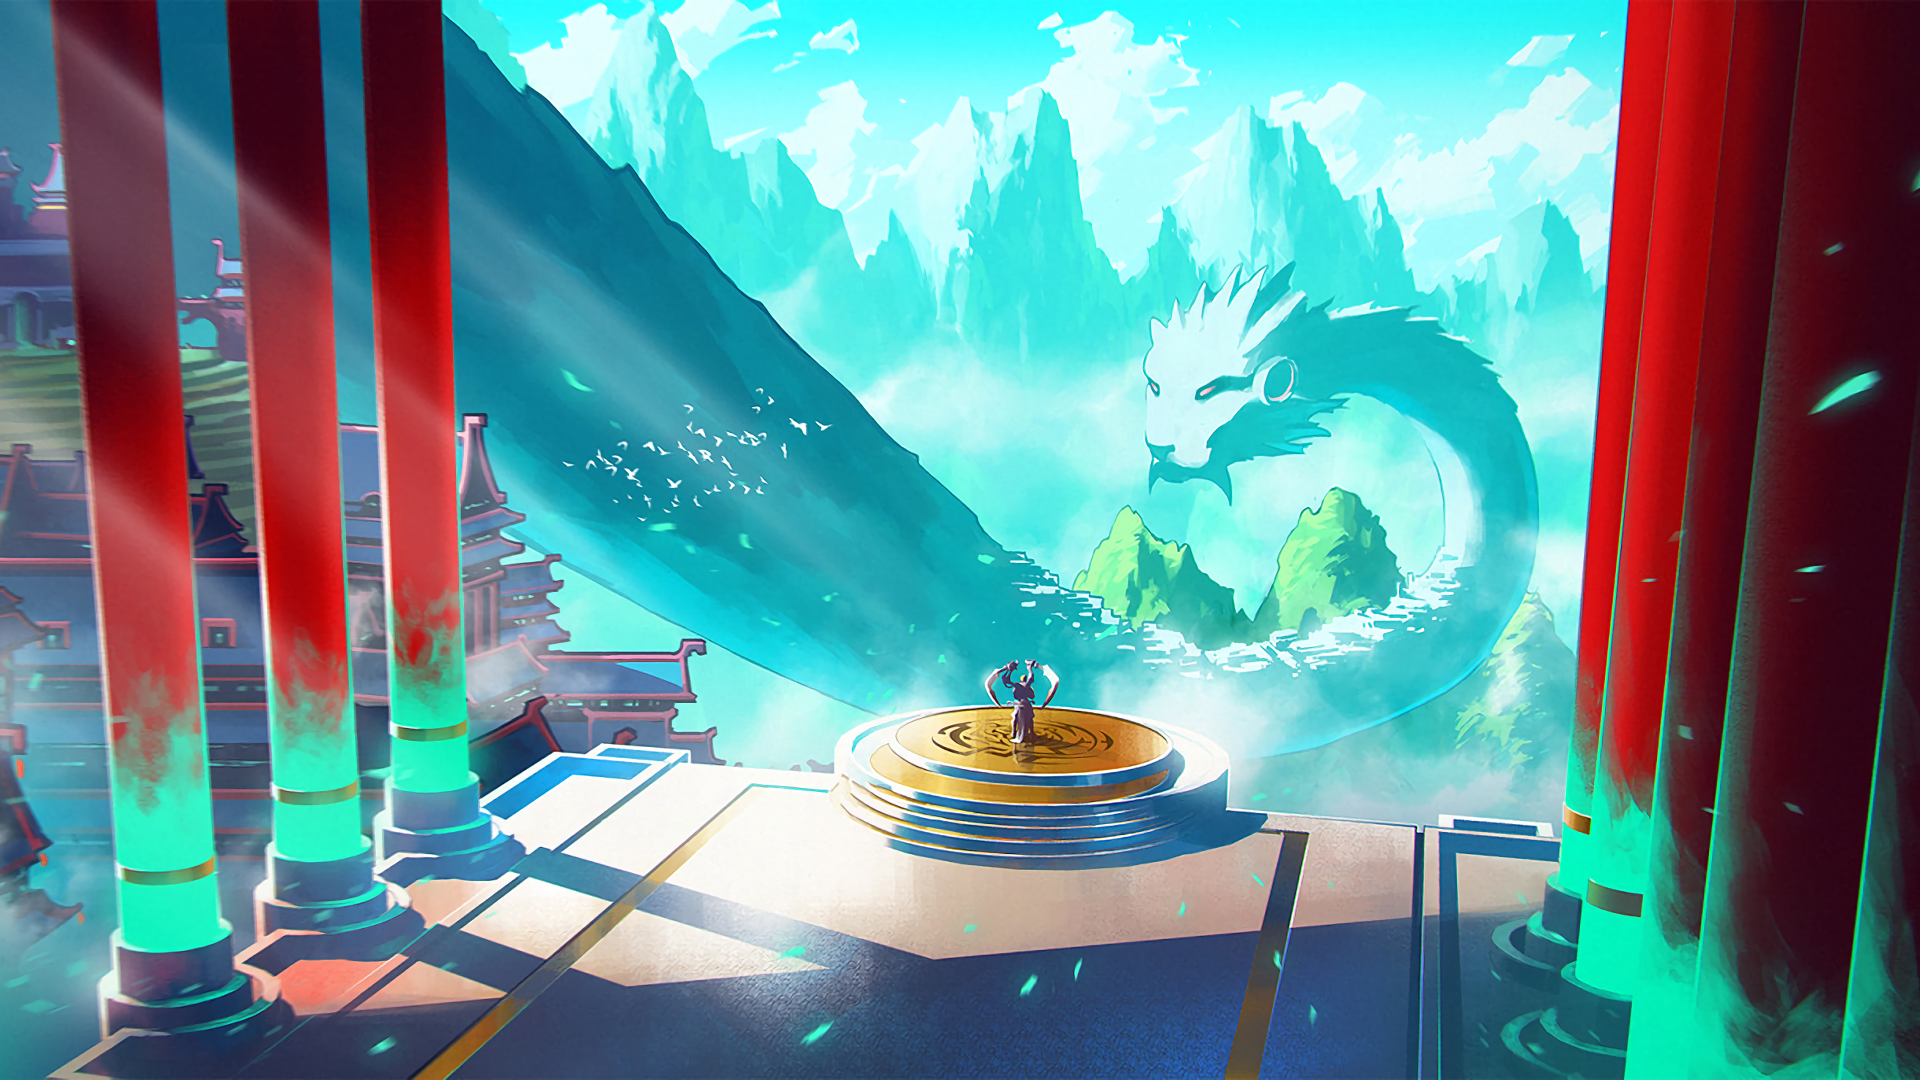 Duelyst wallpapers pictures images - Art wallpaper pictures ...